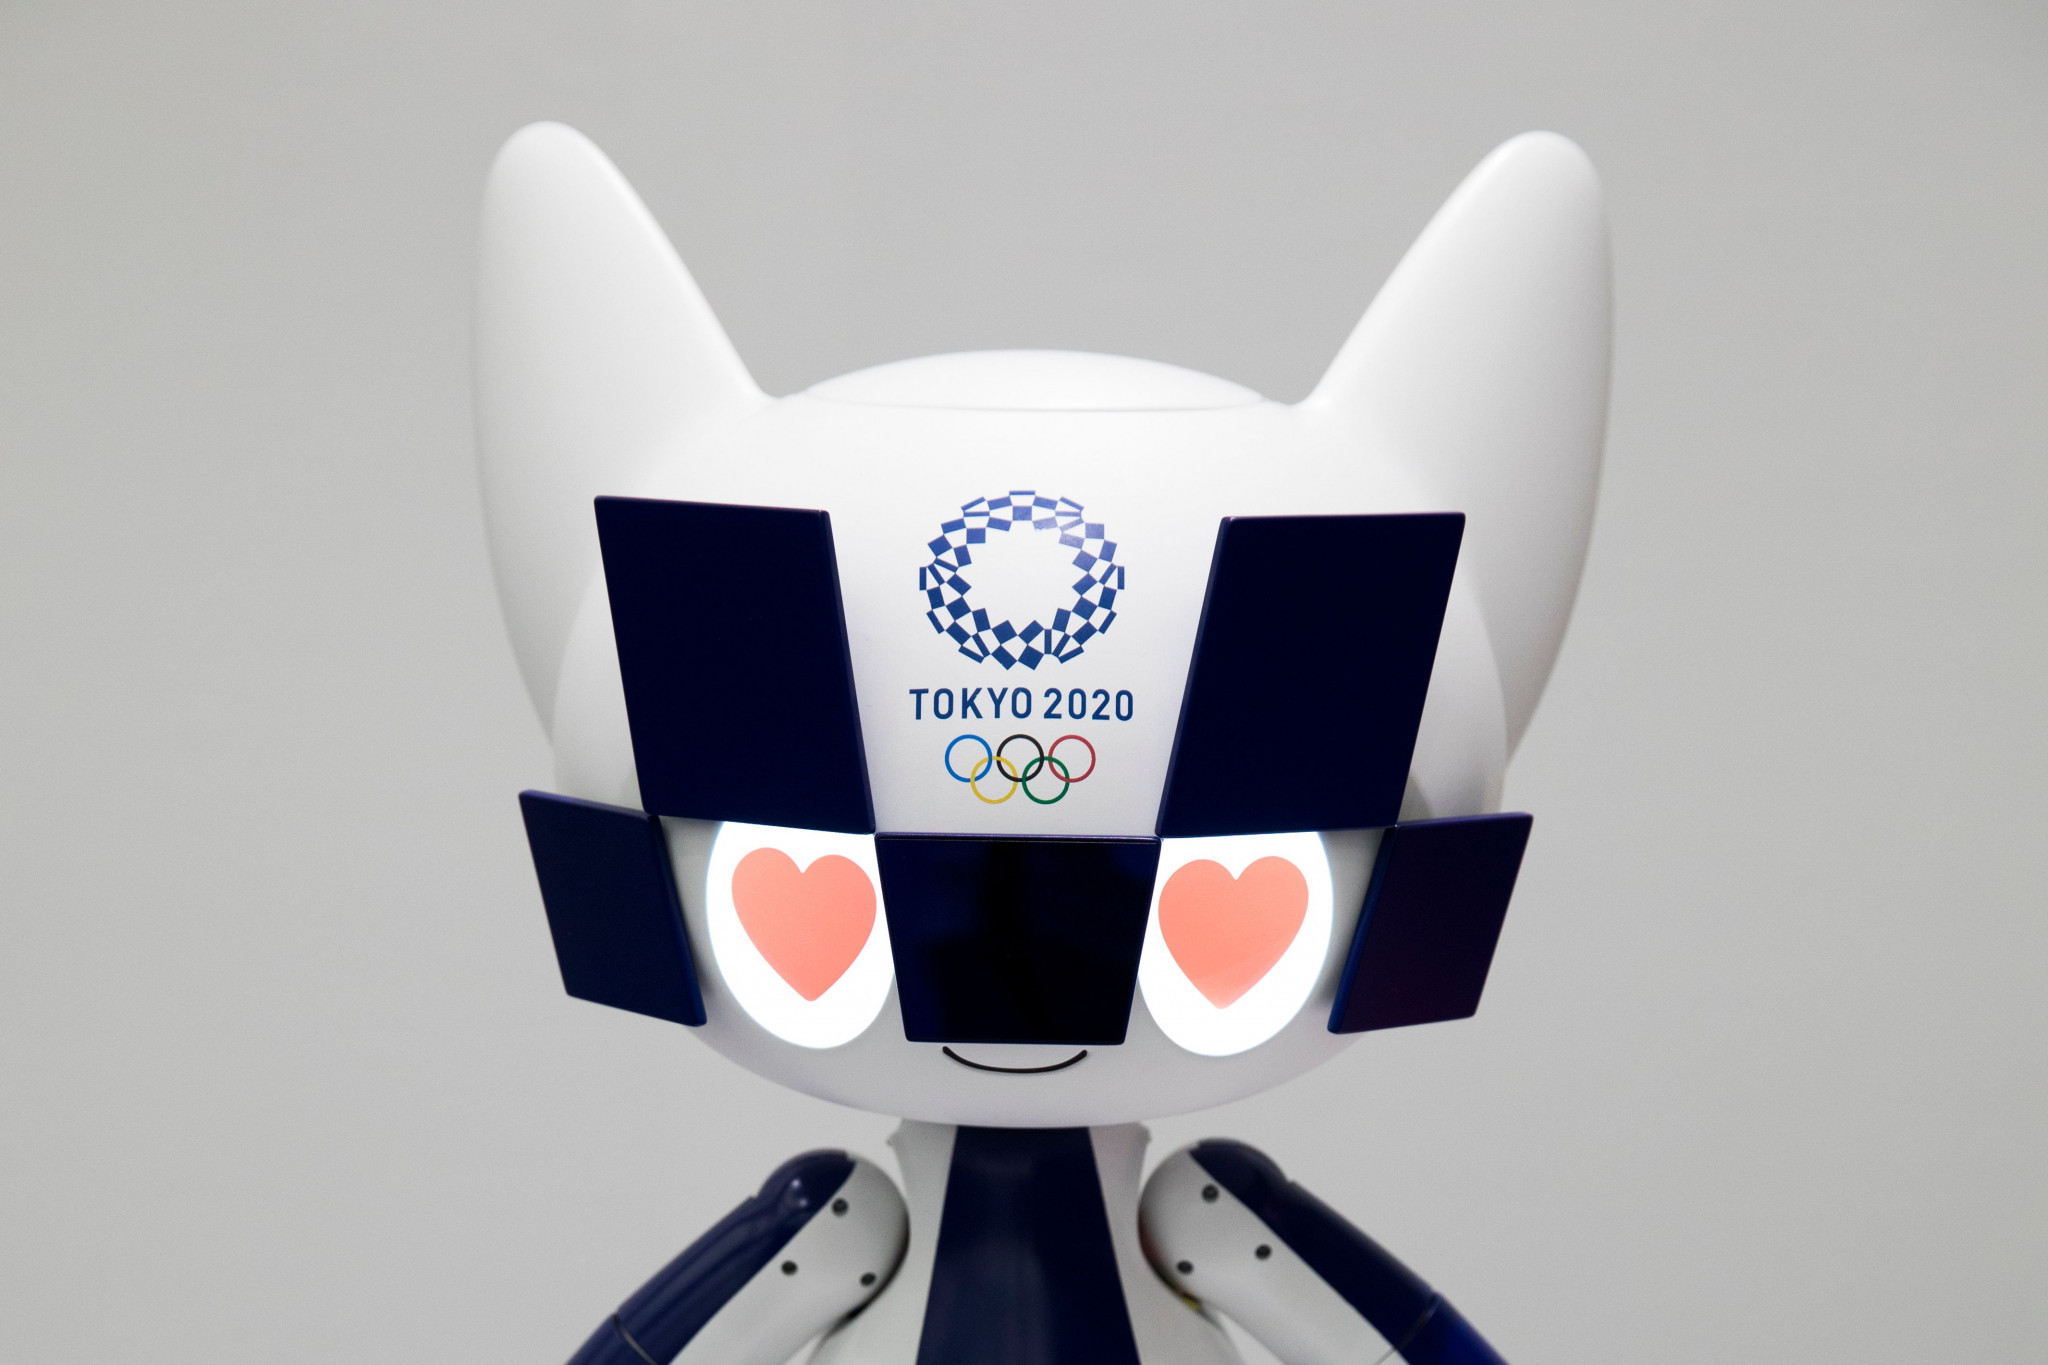 Toyota, which has built robots for use at Tokyo 2020 and is a TOP sponsor, has forecast a collapse in its operating income ©Getty Images